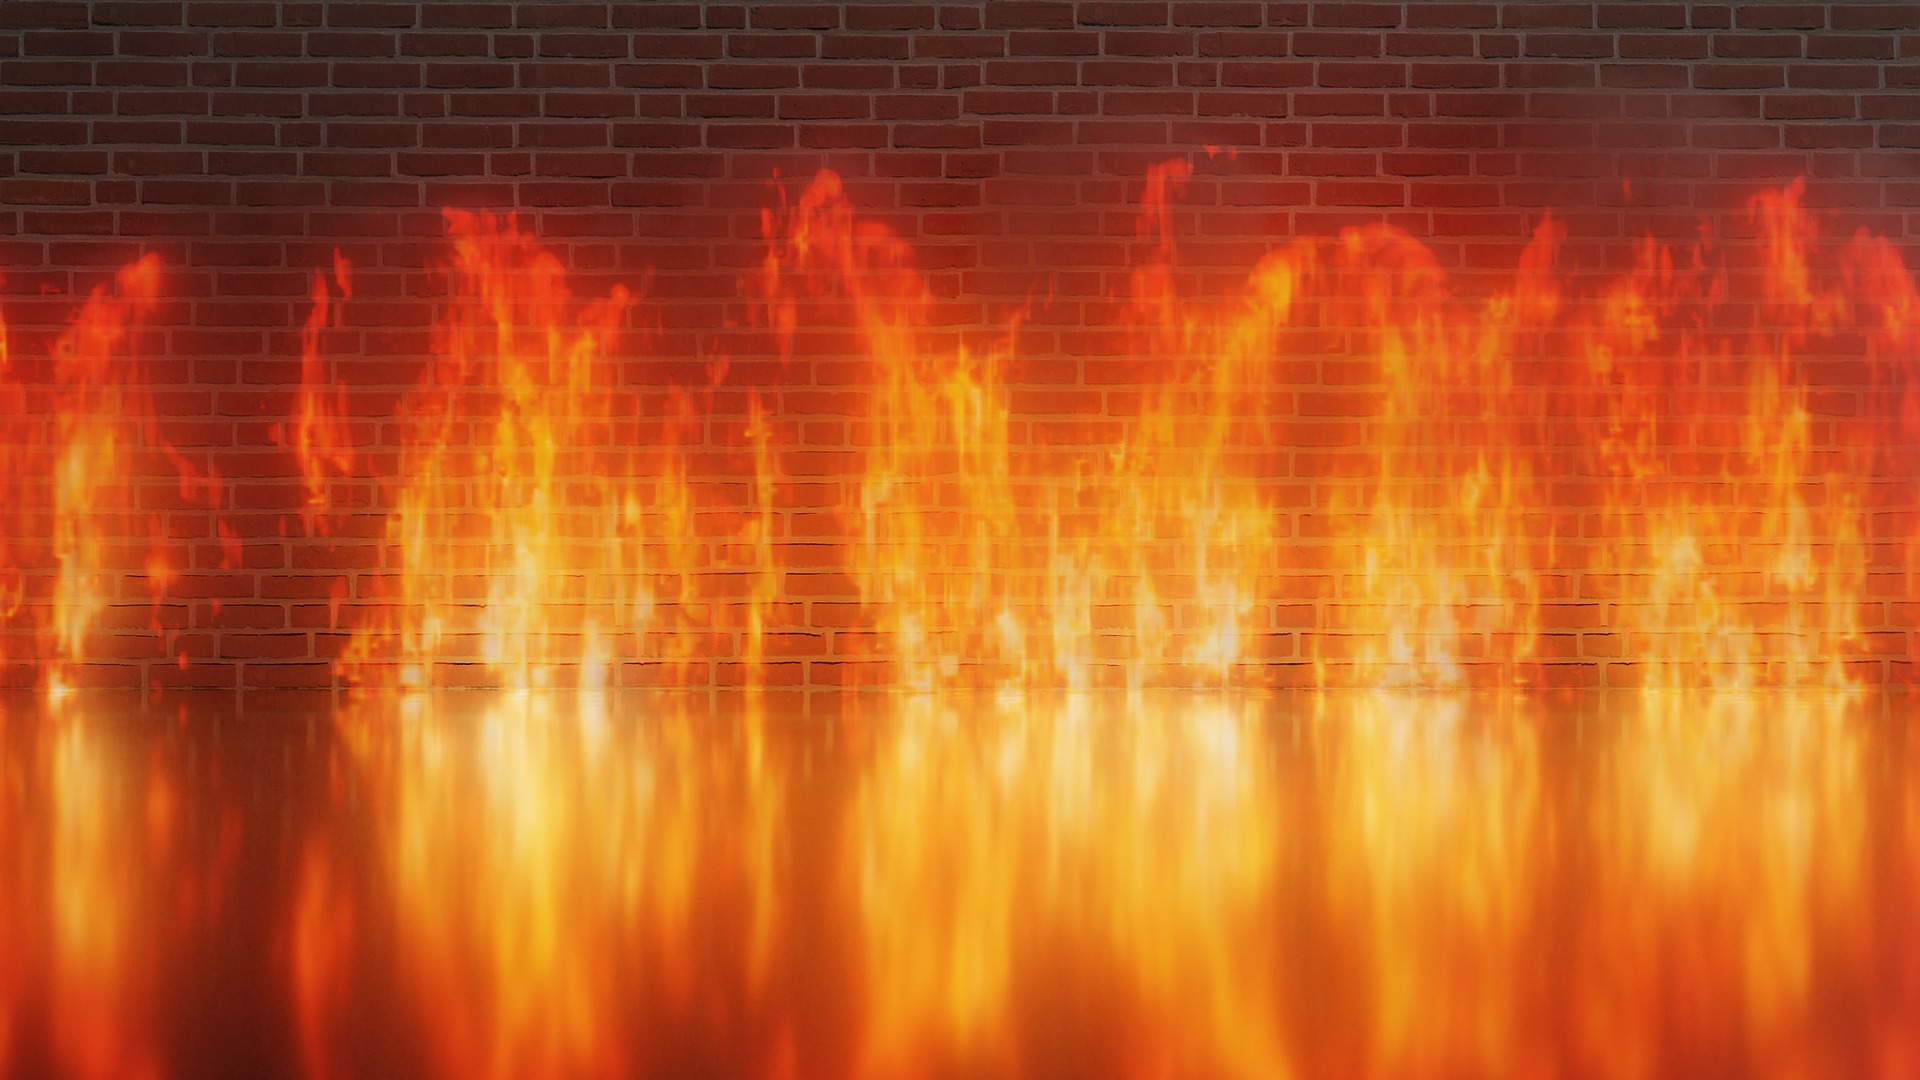 Good Things to Look for in Firewalls – Some Protect us from Bad Traffic Better than Others